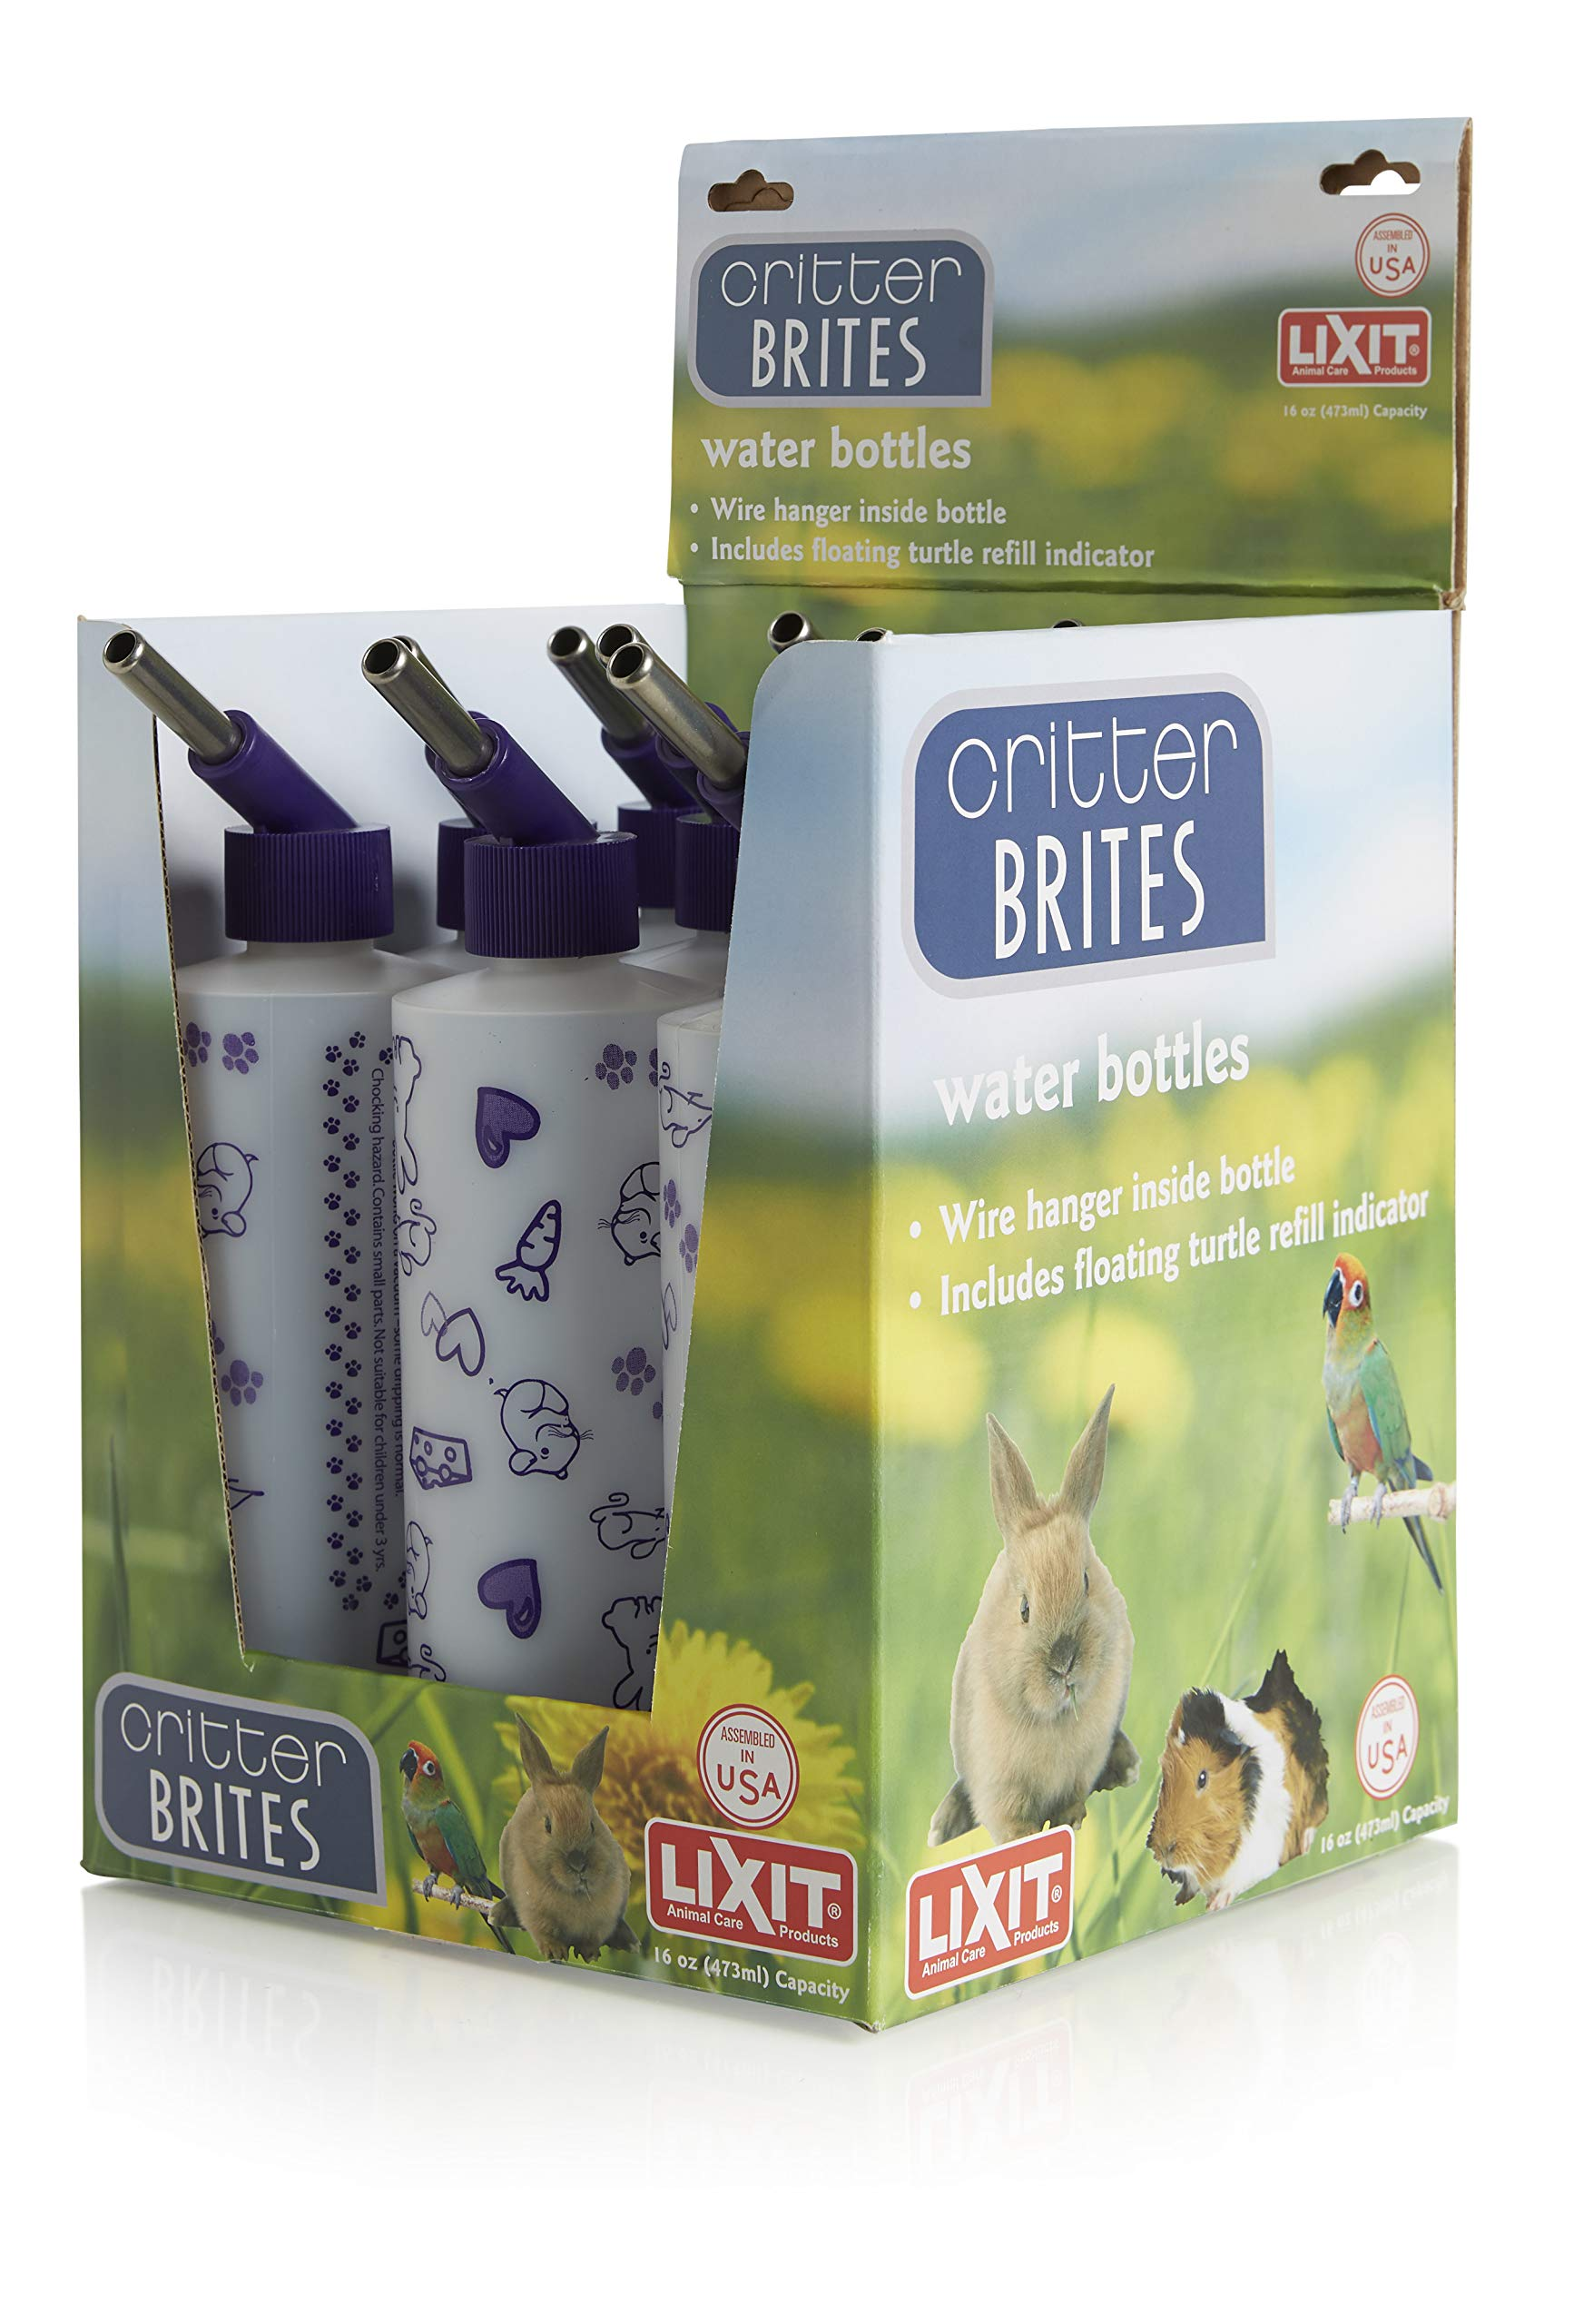 Lixit Corporation SLX0536 9-Pack Critter Brites Small Animal Water Bottle Display, 16-Ounce, Day Glow